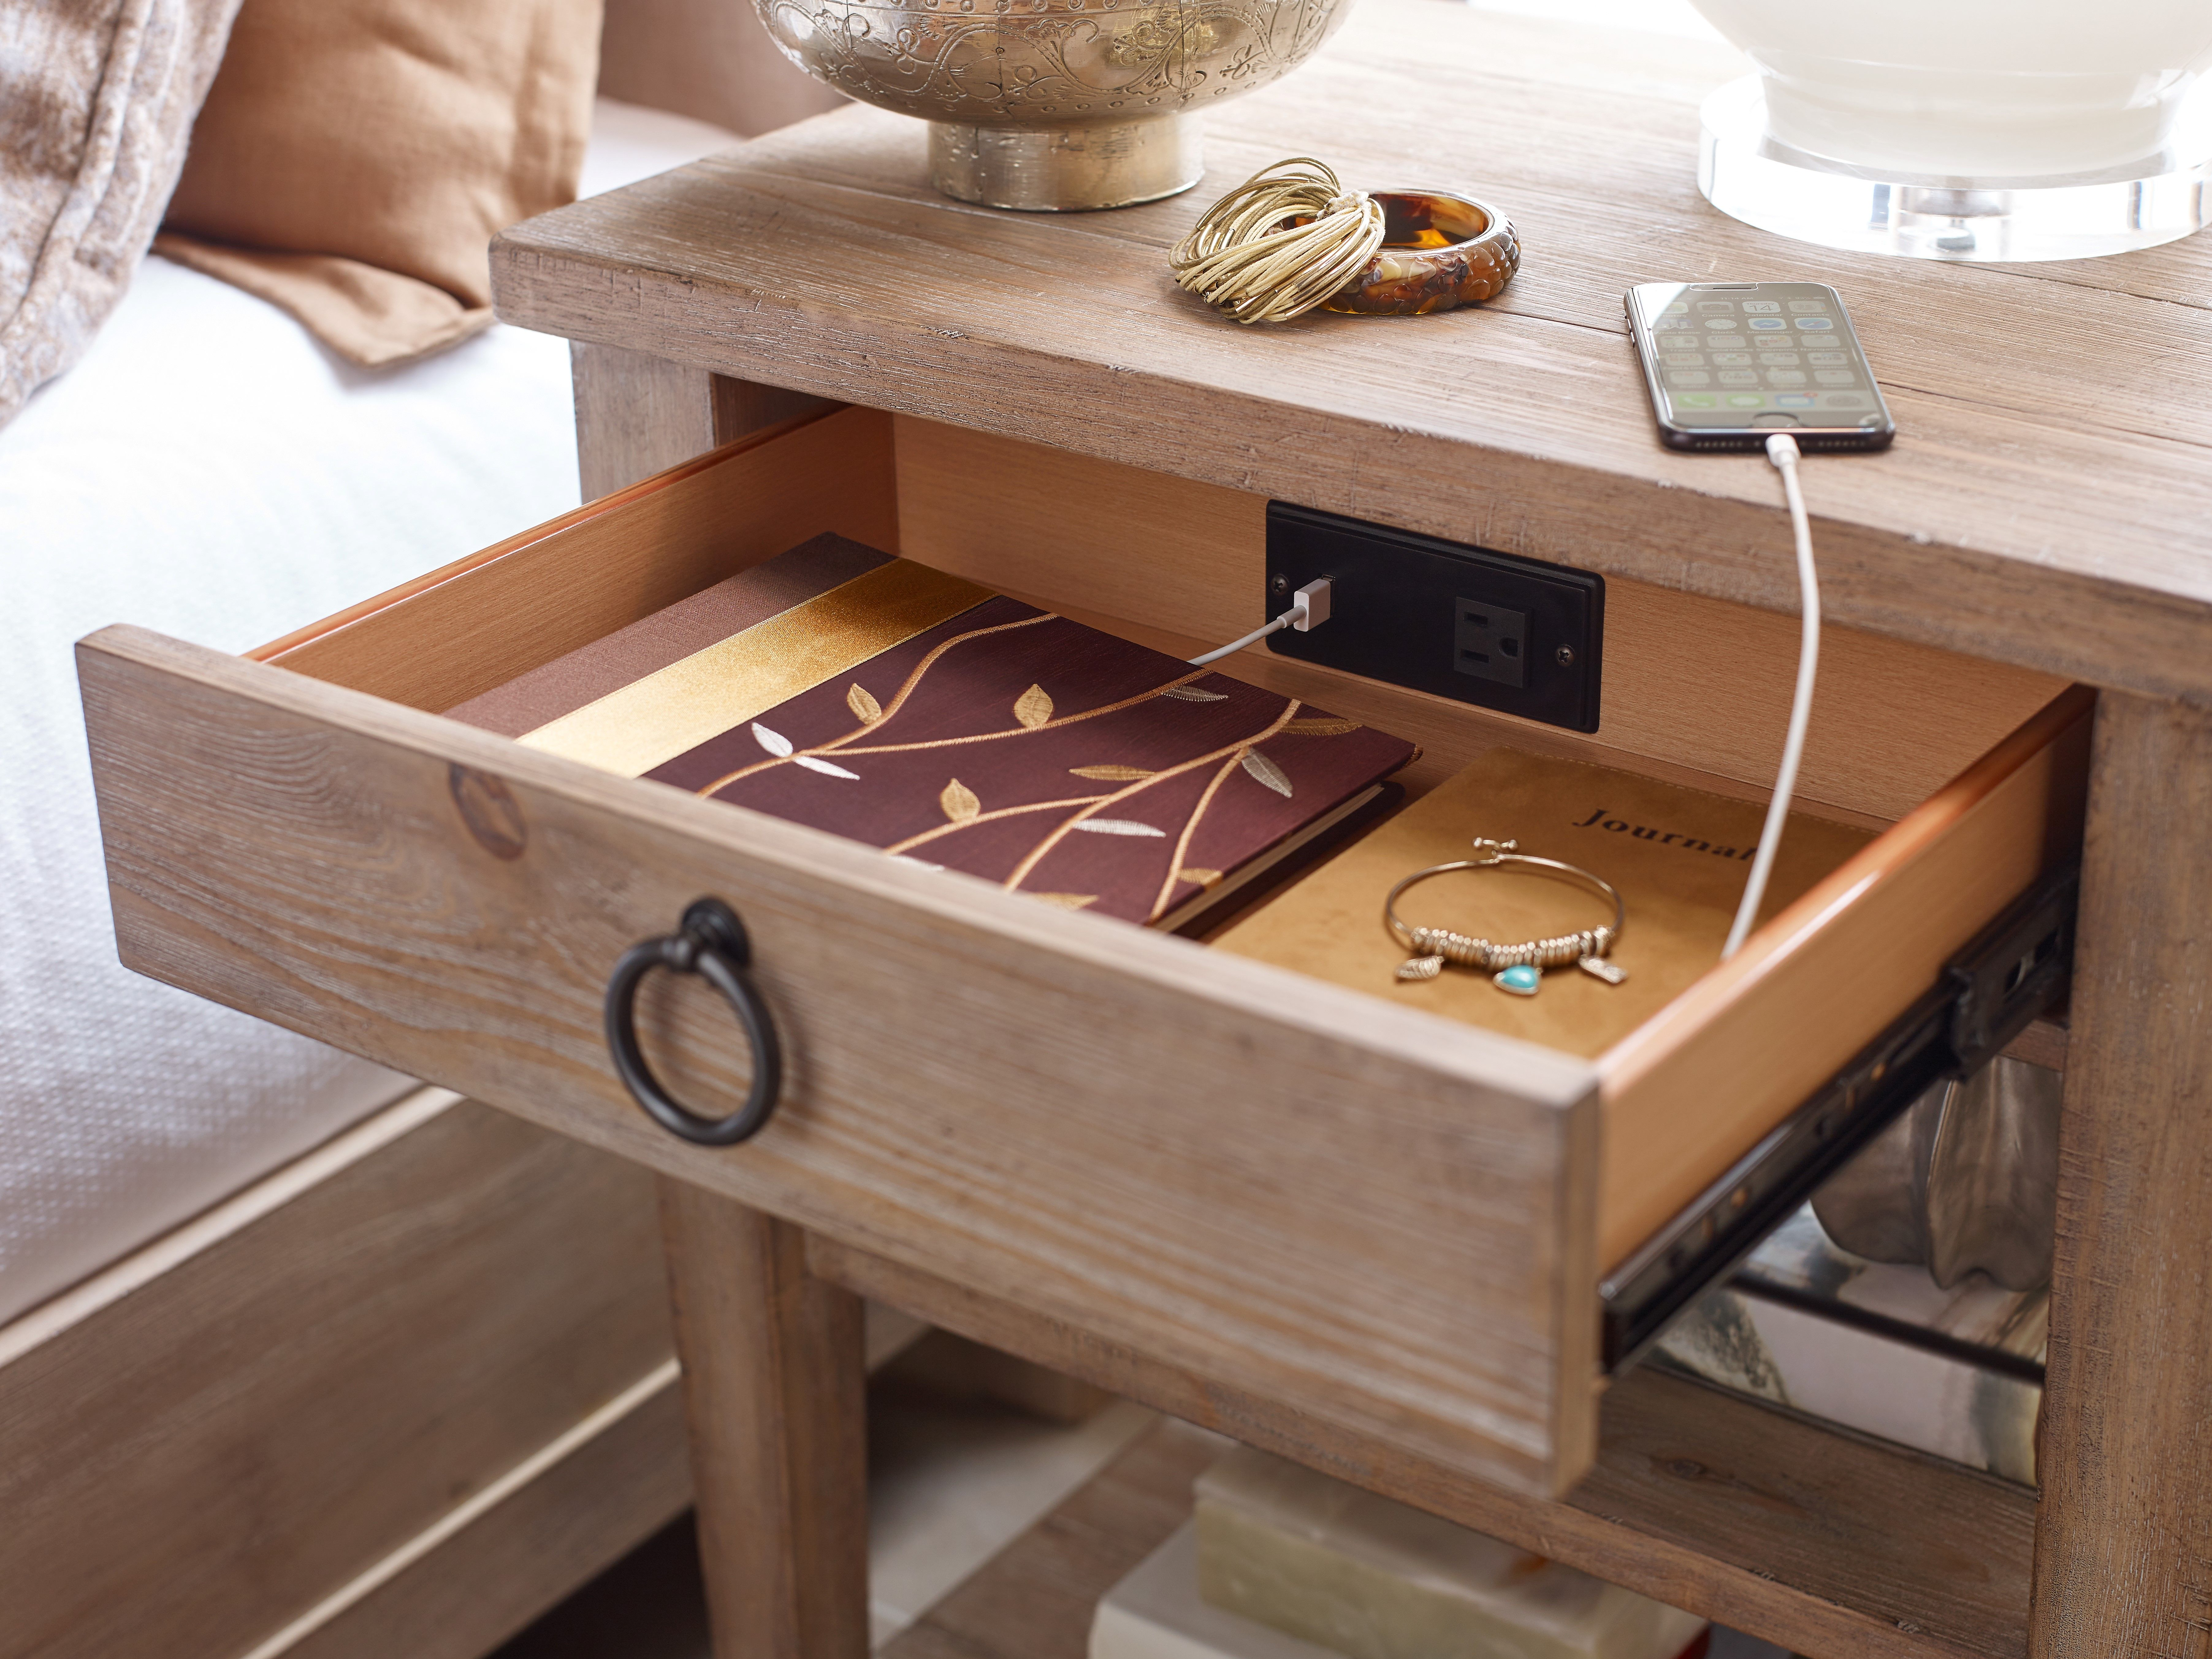 Both Monteverdi Nightstand Styles Feature A Built In Outlet With